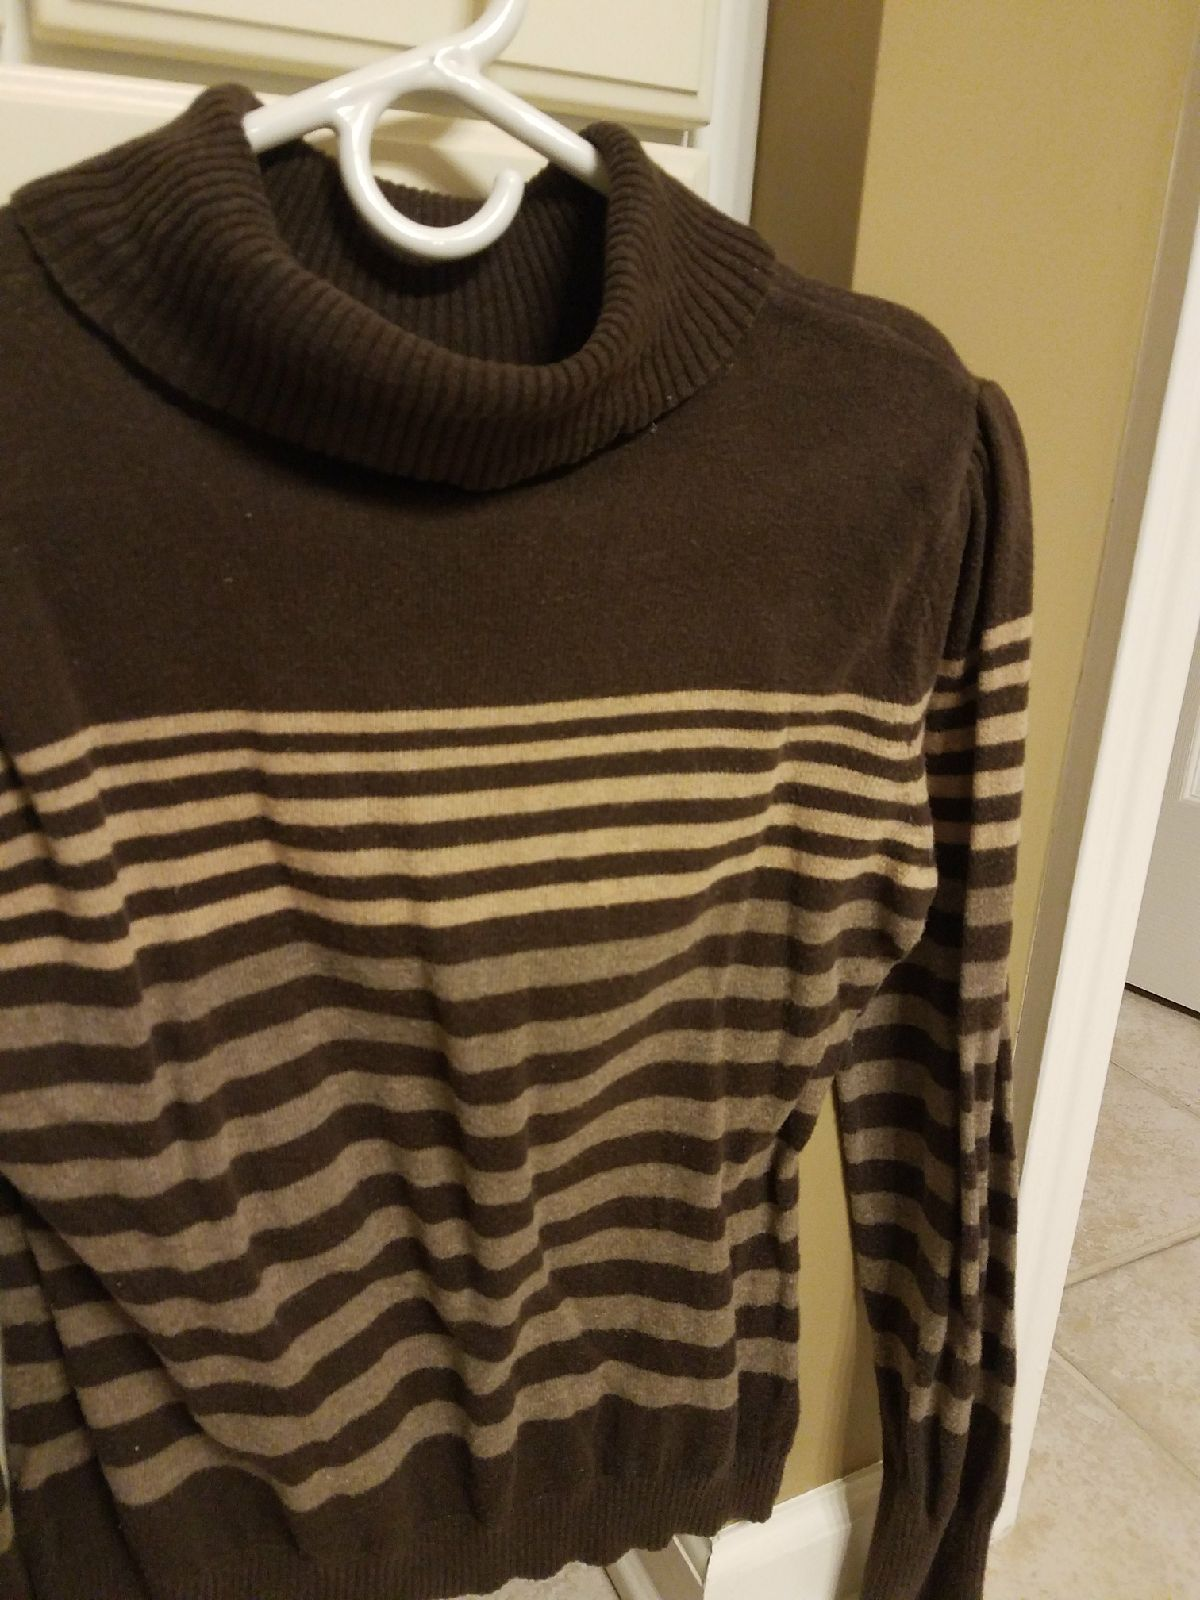 Womens petite size medium brown sweater - Mercari: BUY & SELL ...